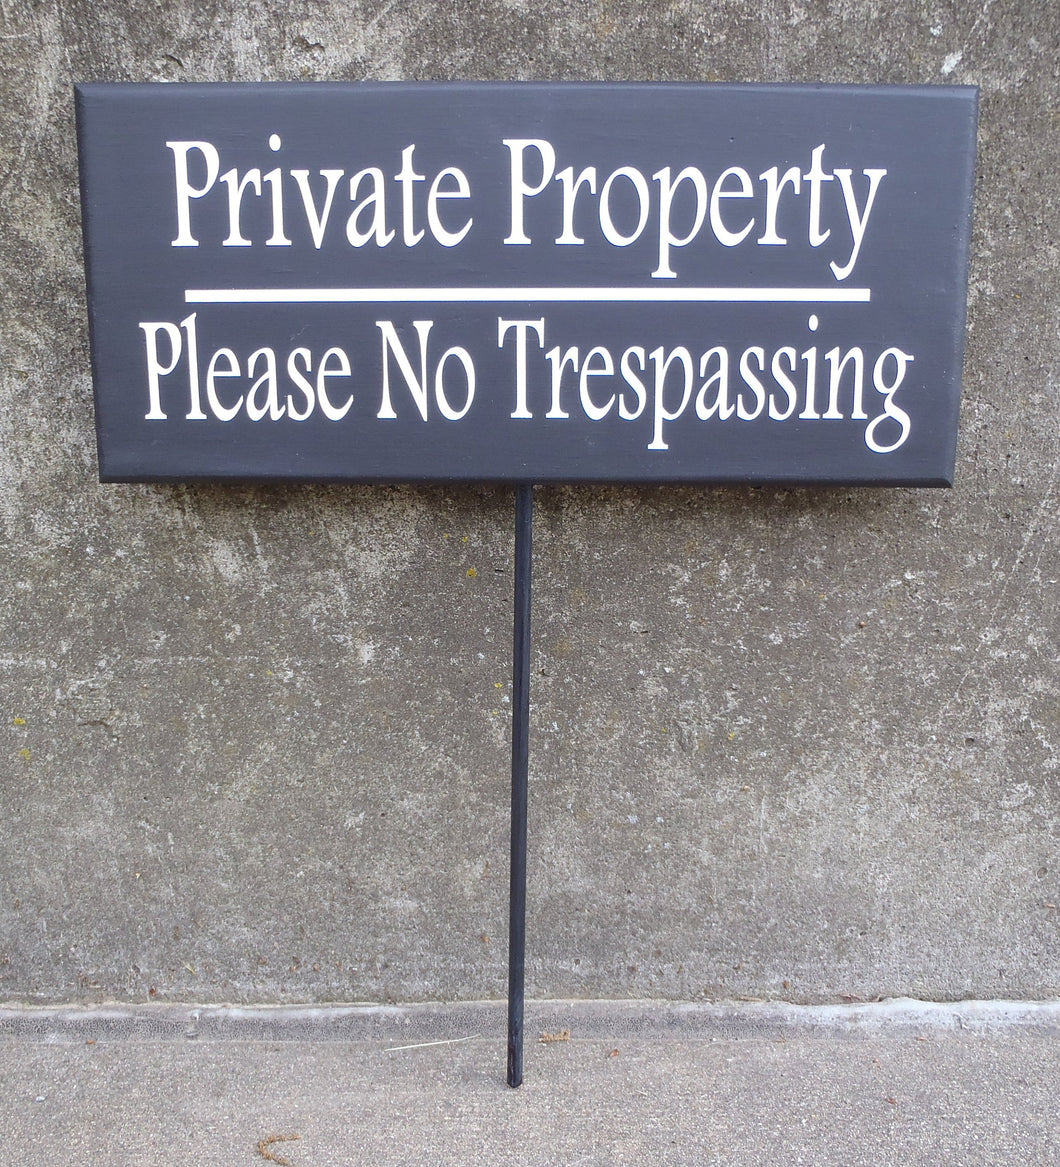 Private Property Please No Trespassing Wood Vinyl Front Yard Stake Decorative Signs Home Owners Business Owners Contractors Outdoor Signage